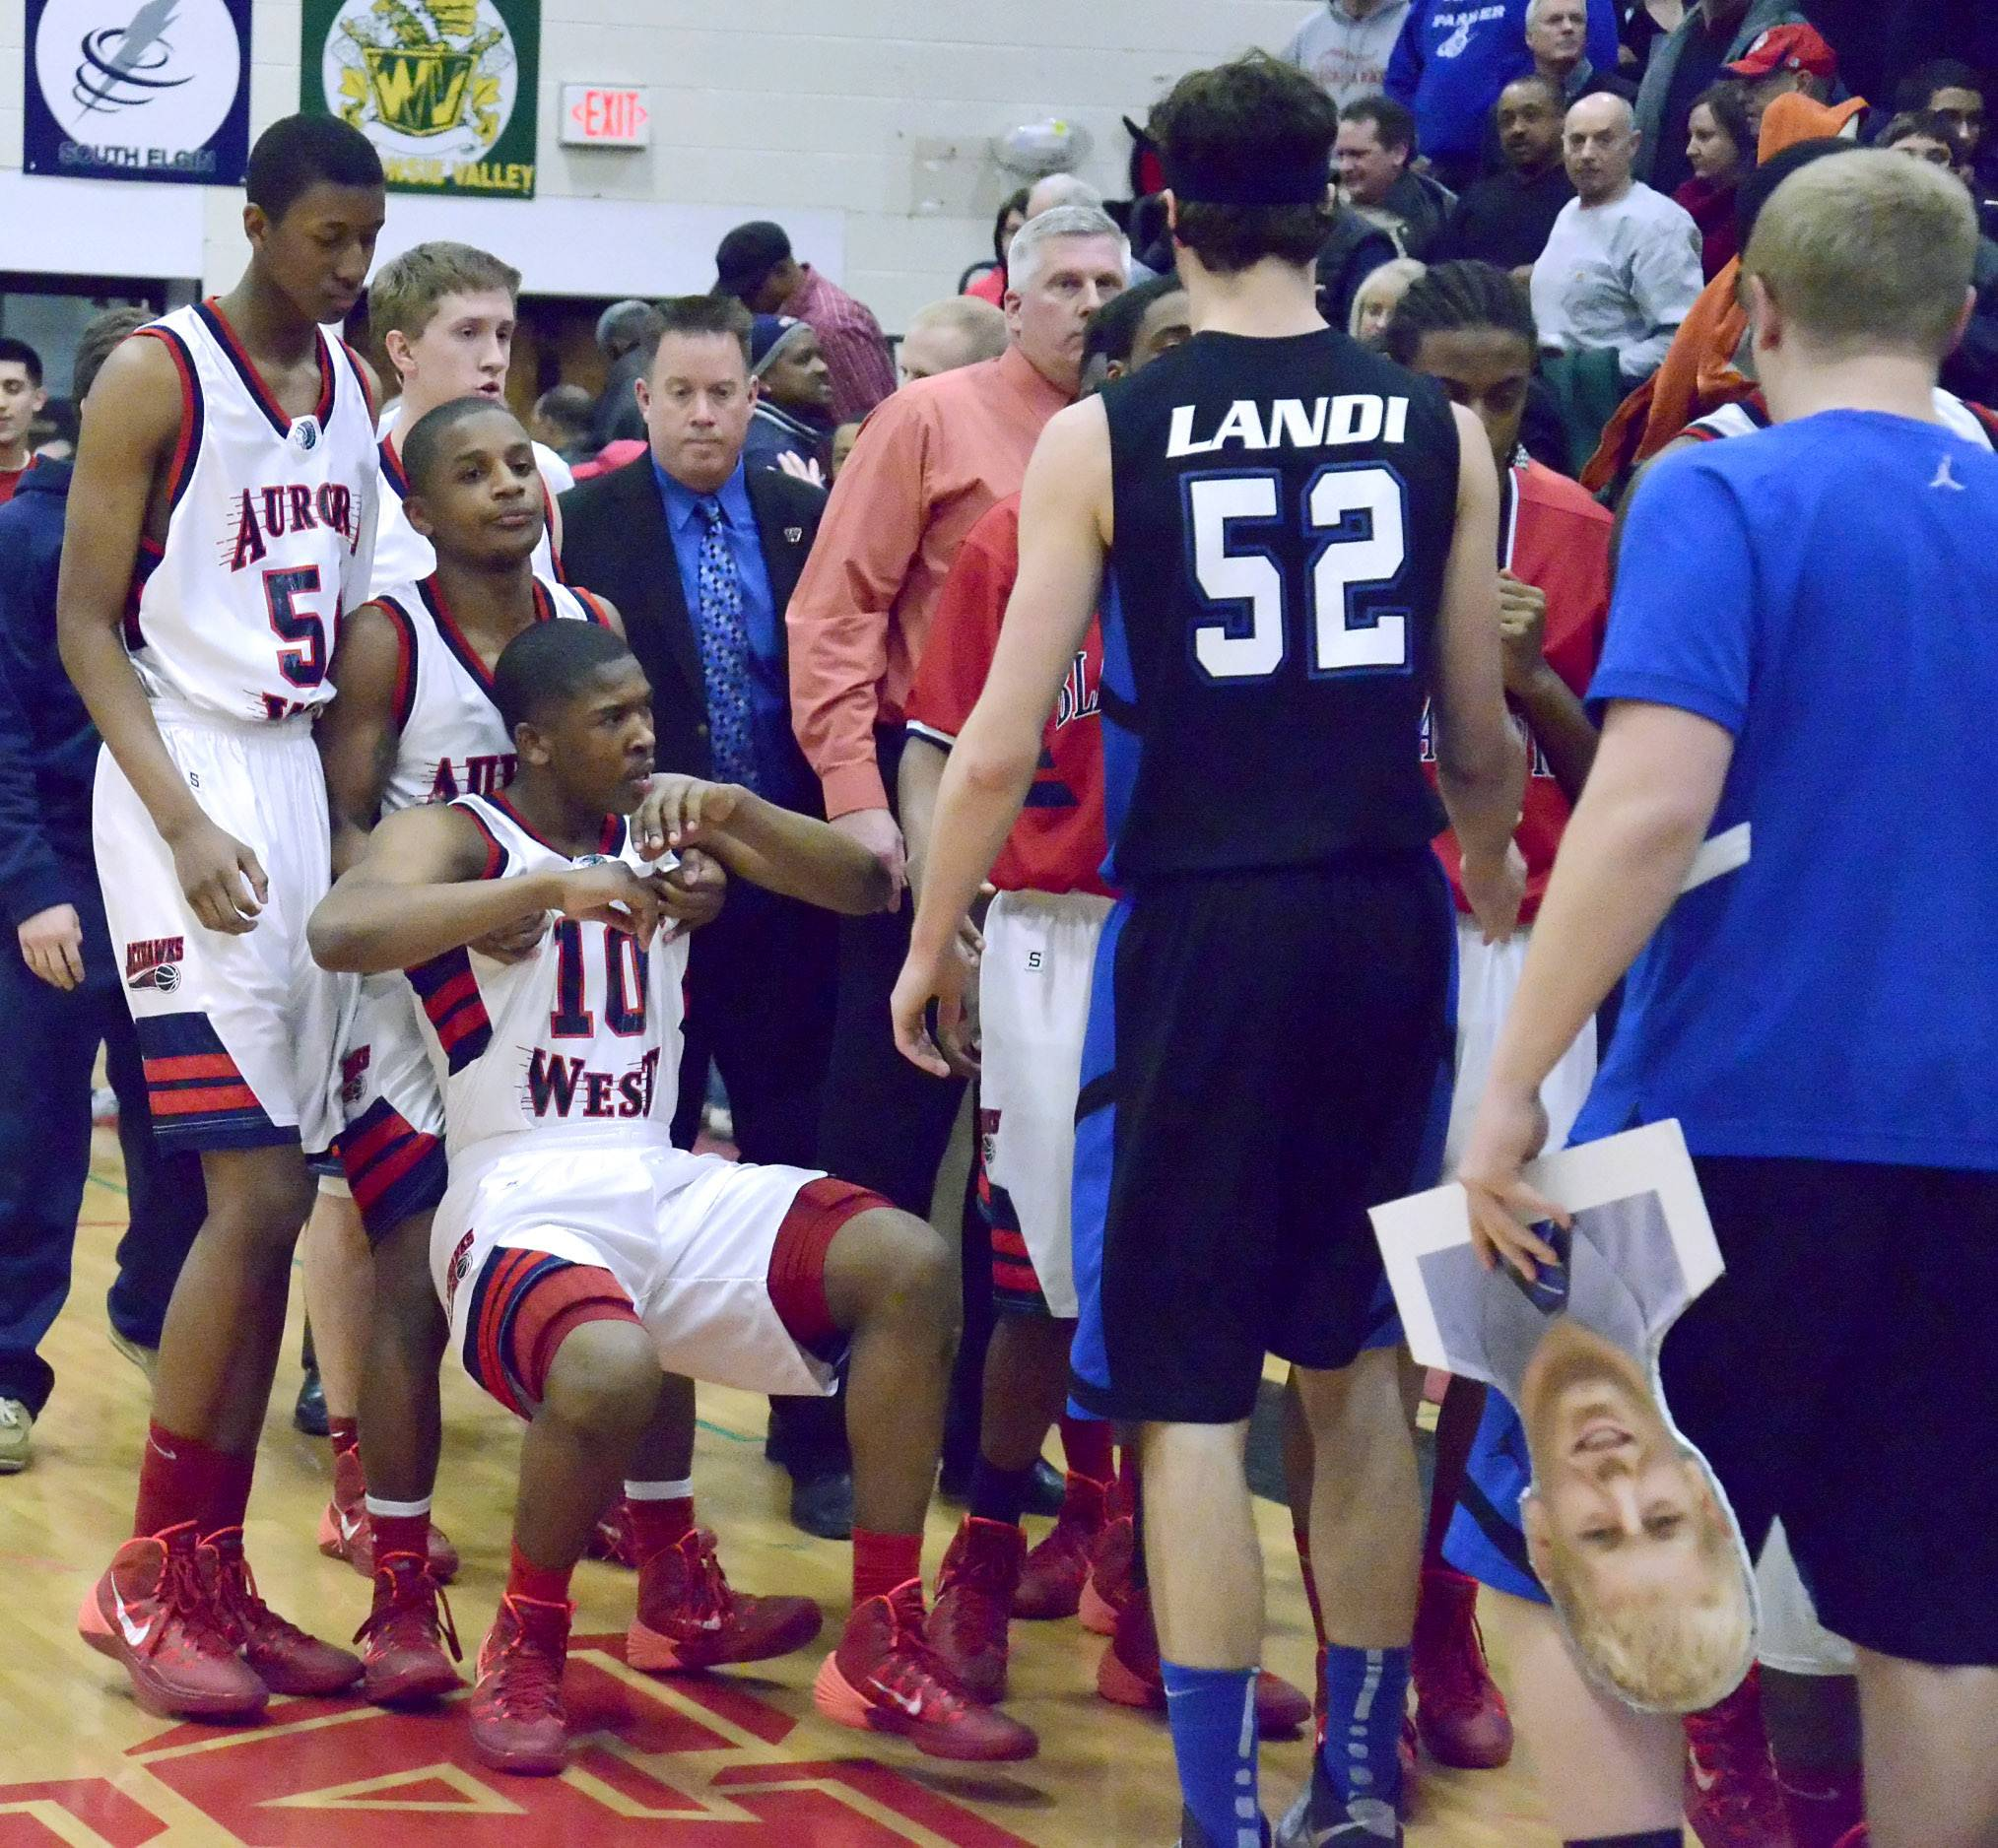 West Aurora's Matthew Dunn lifts teammate Jontrell Walker off the court after their loss to Geneva.